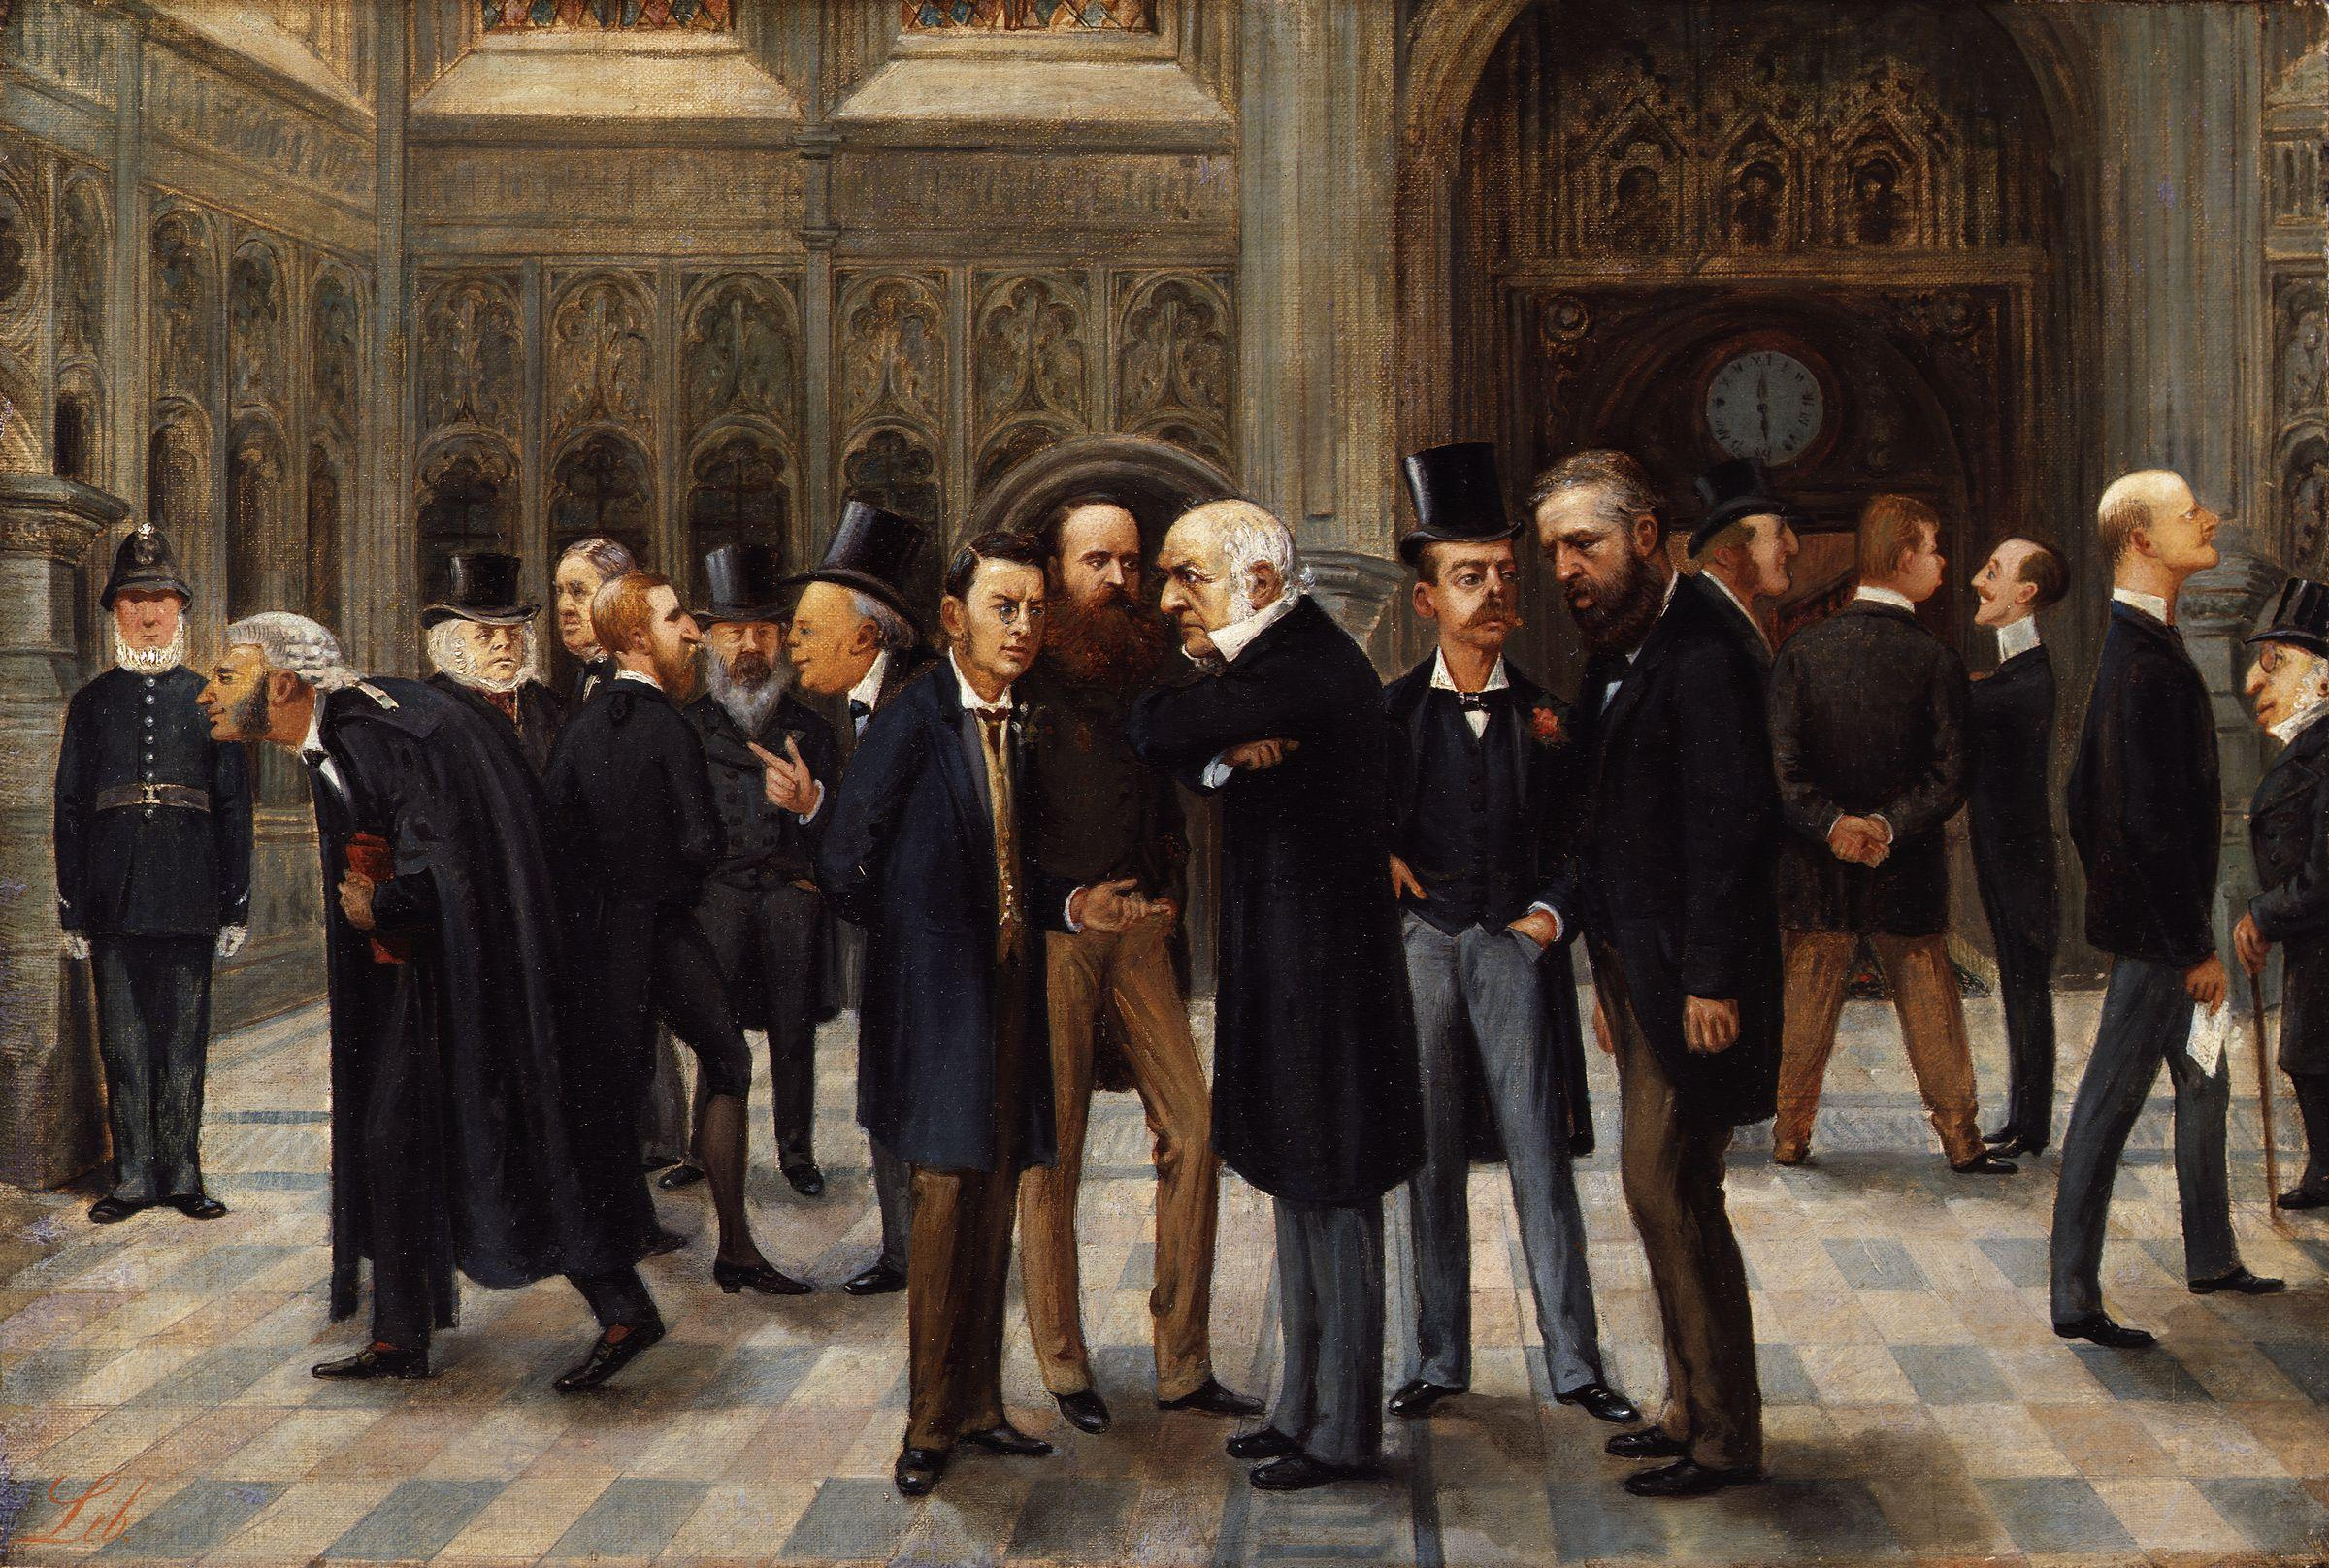 The lobby of the House of Commons. Painting 1886 by Liborio Prosperi.